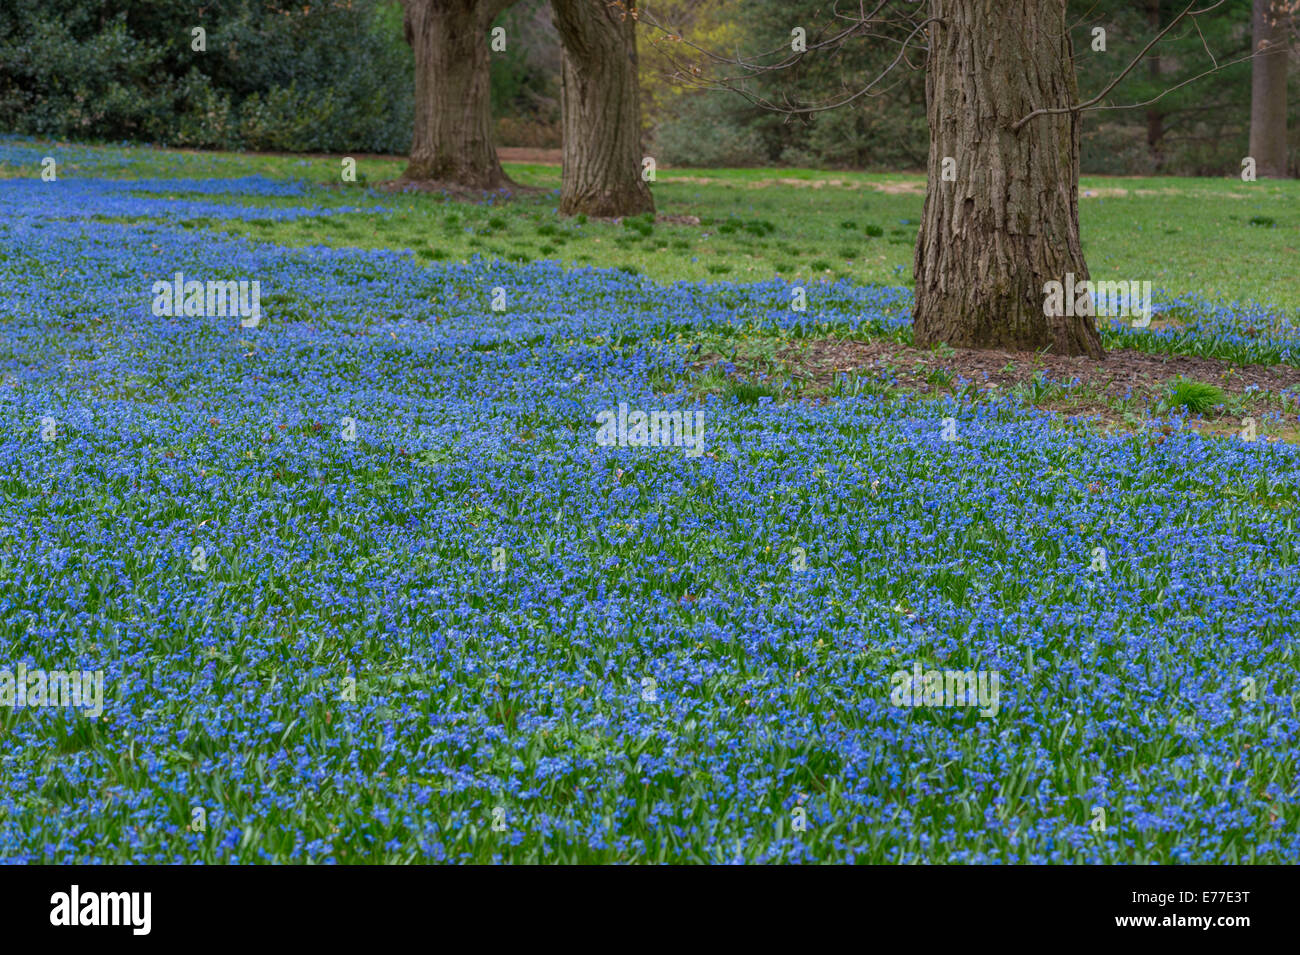 field of blue flowers with trees stock photo 73308812 alamy